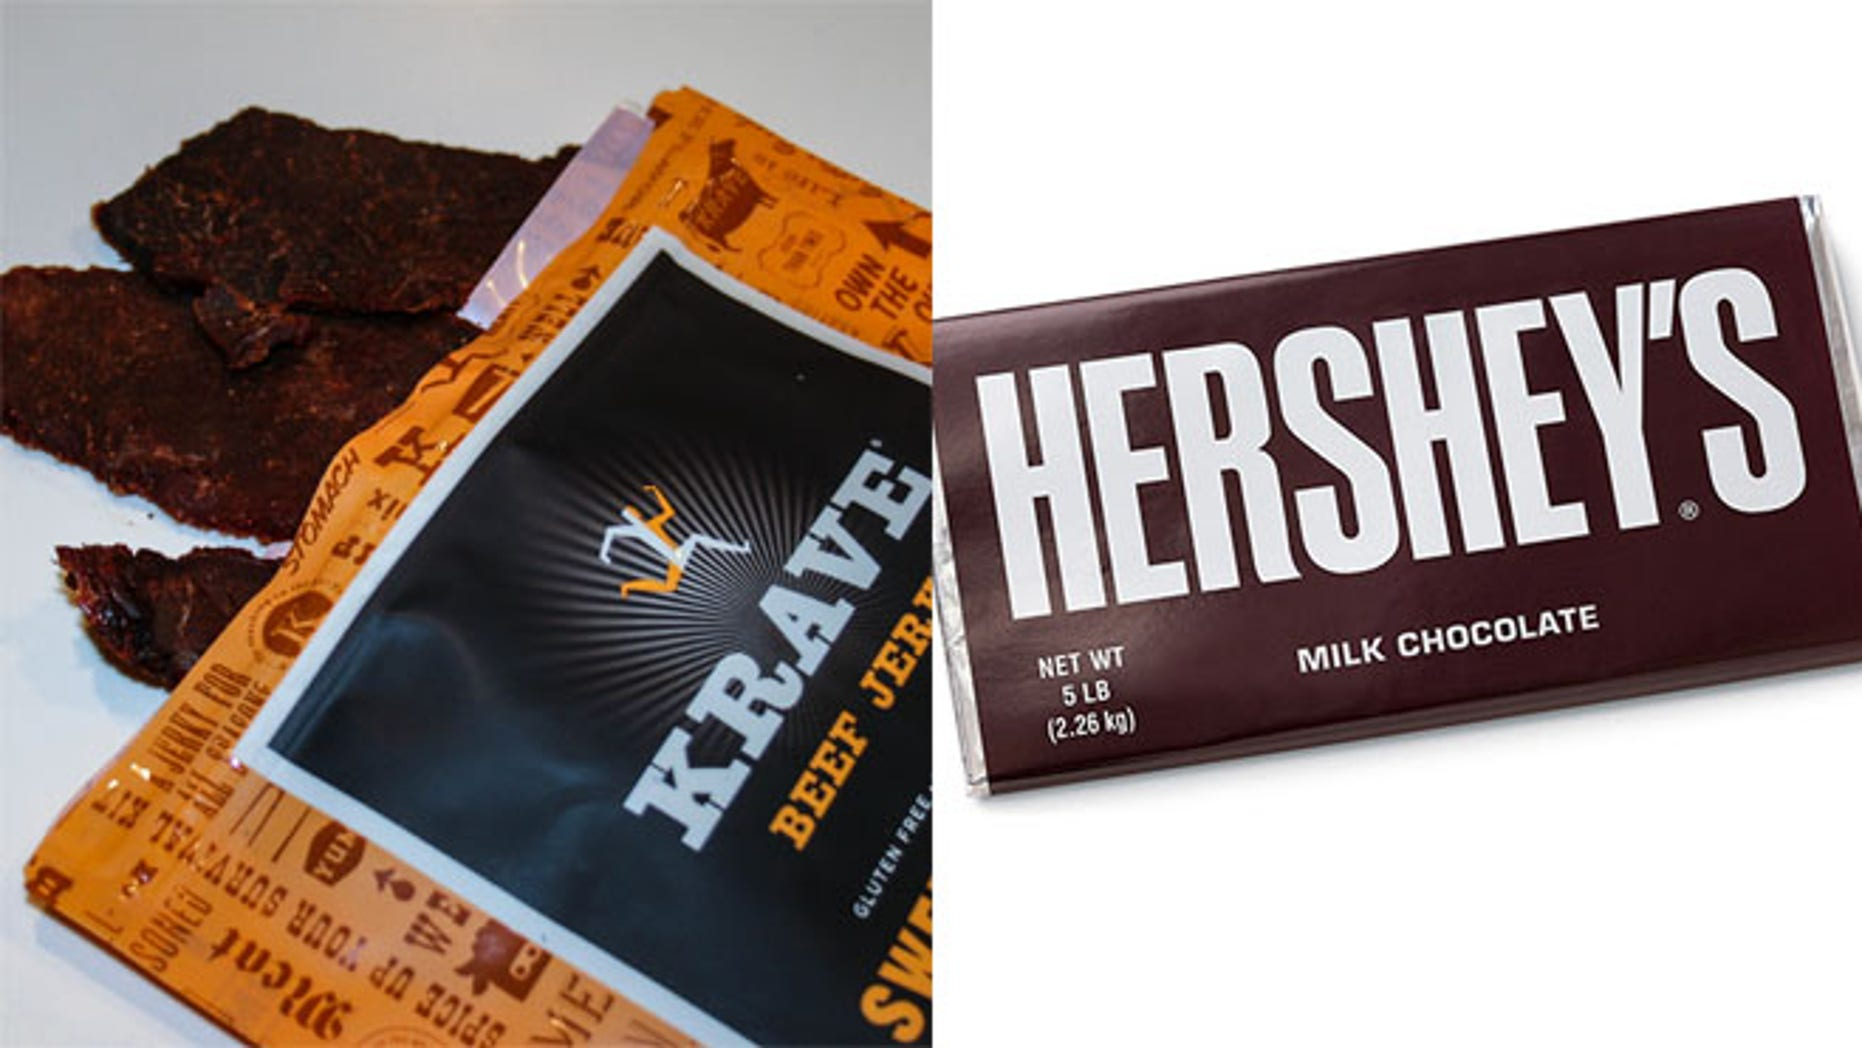 The chocolate company now owns KRAVE, the maker of artisanal beef jerky.